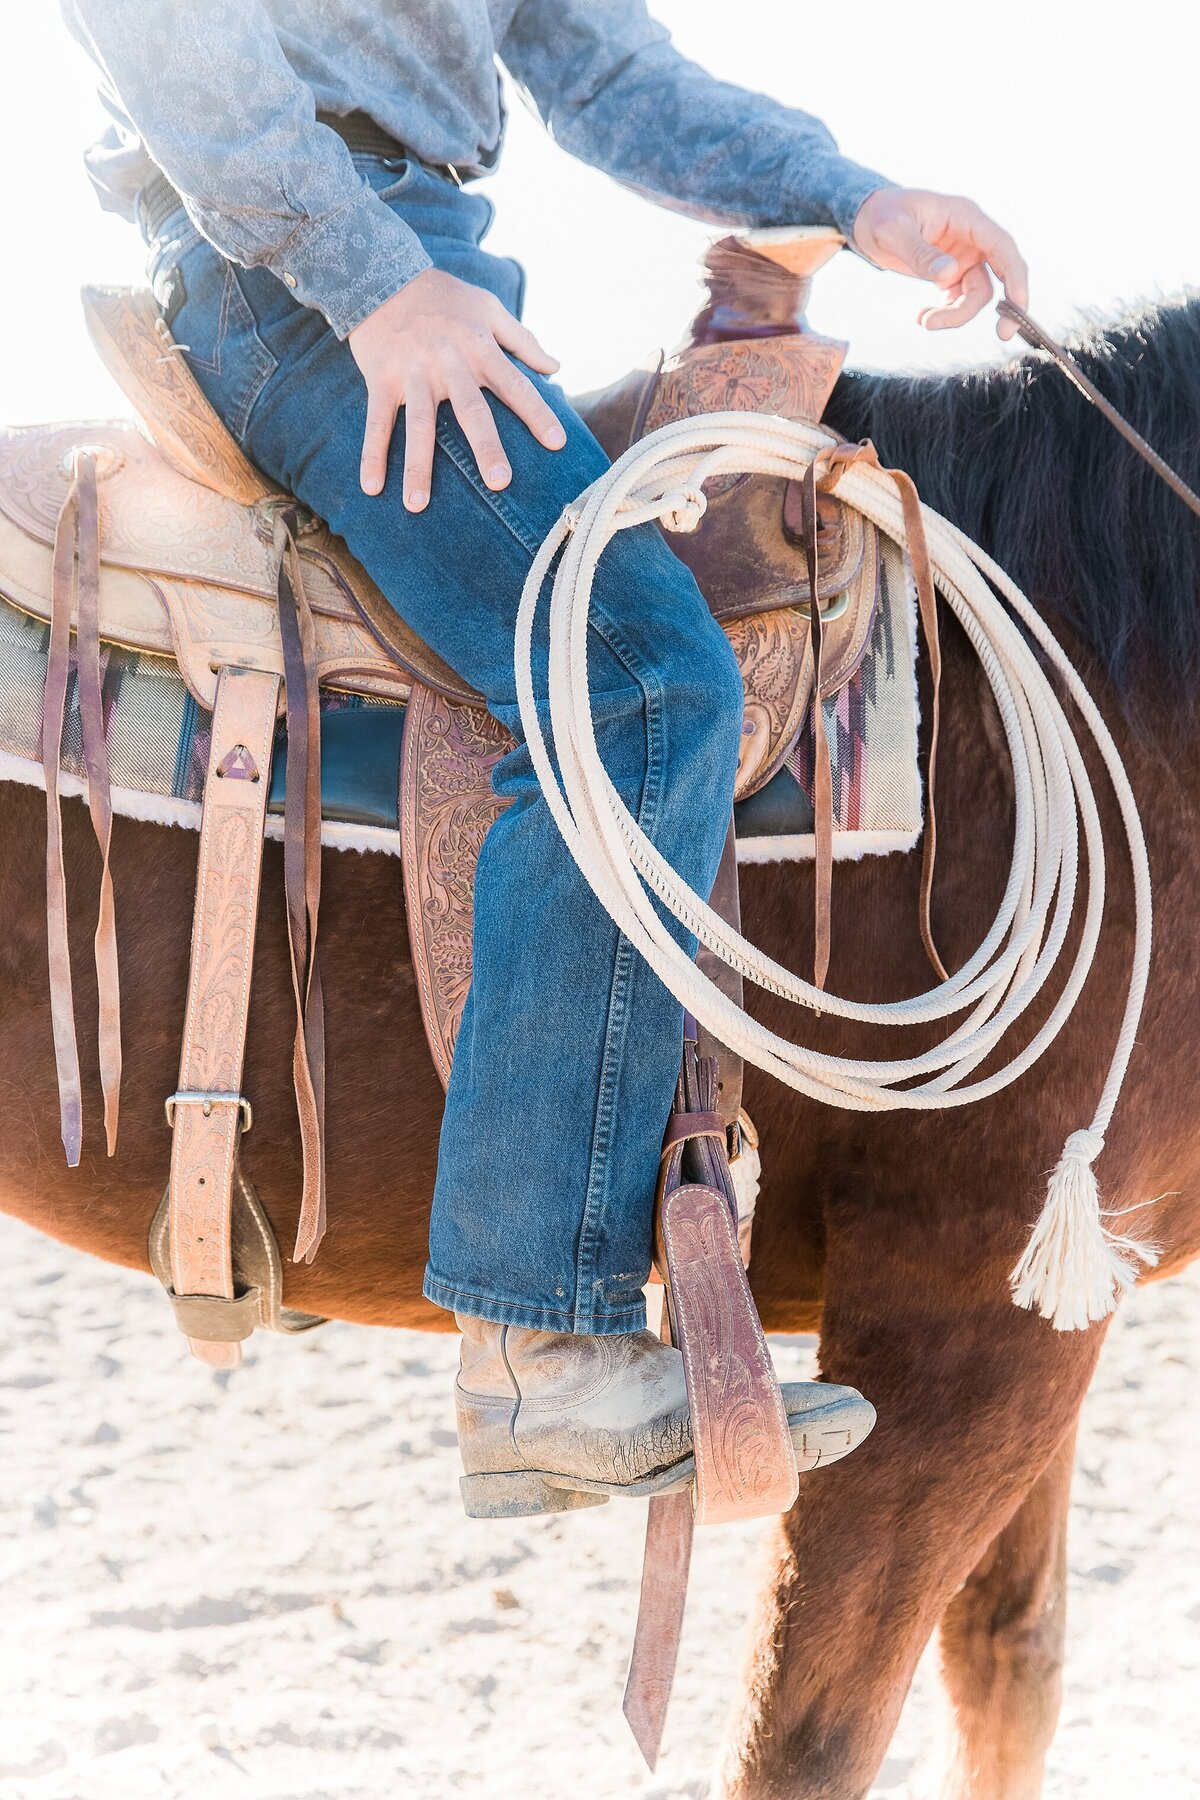 close up of a cowboy sitting in a western saddle with a rope attached.